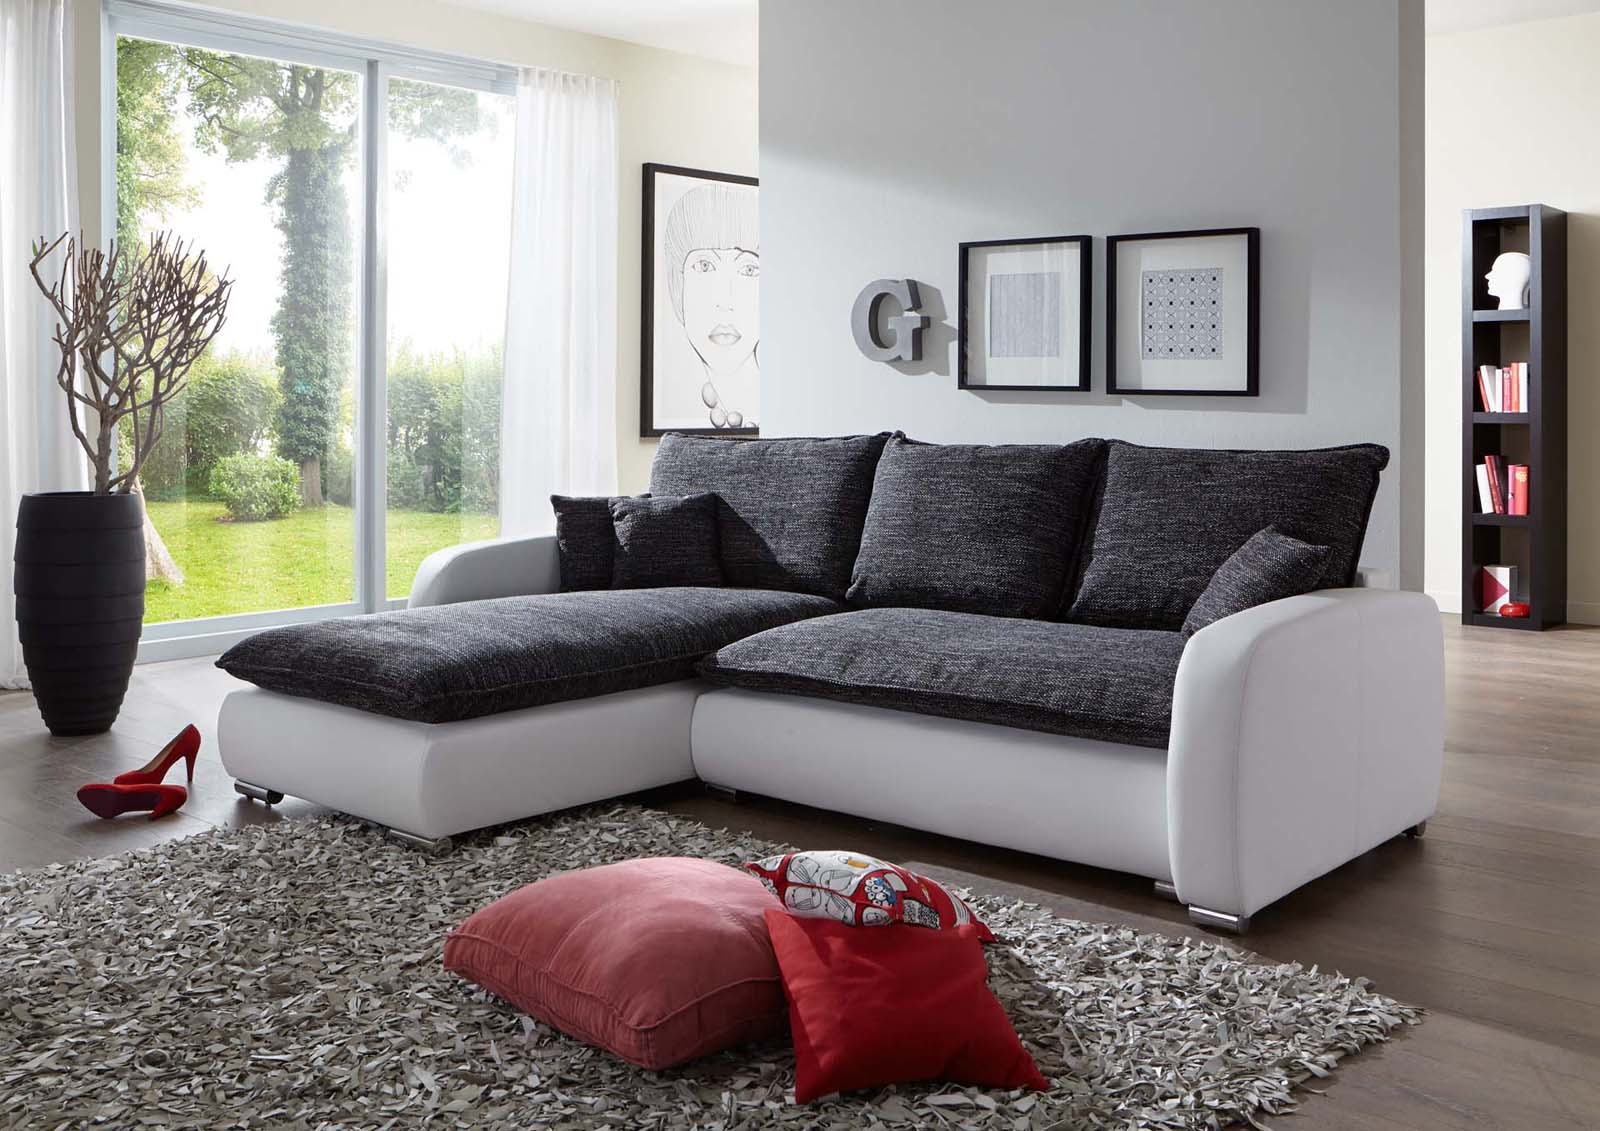 sam ecksofa grau wei scala 24 sofa 180 x 260 cm. Black Bedroom Furniture Sets. Home Design Ideas